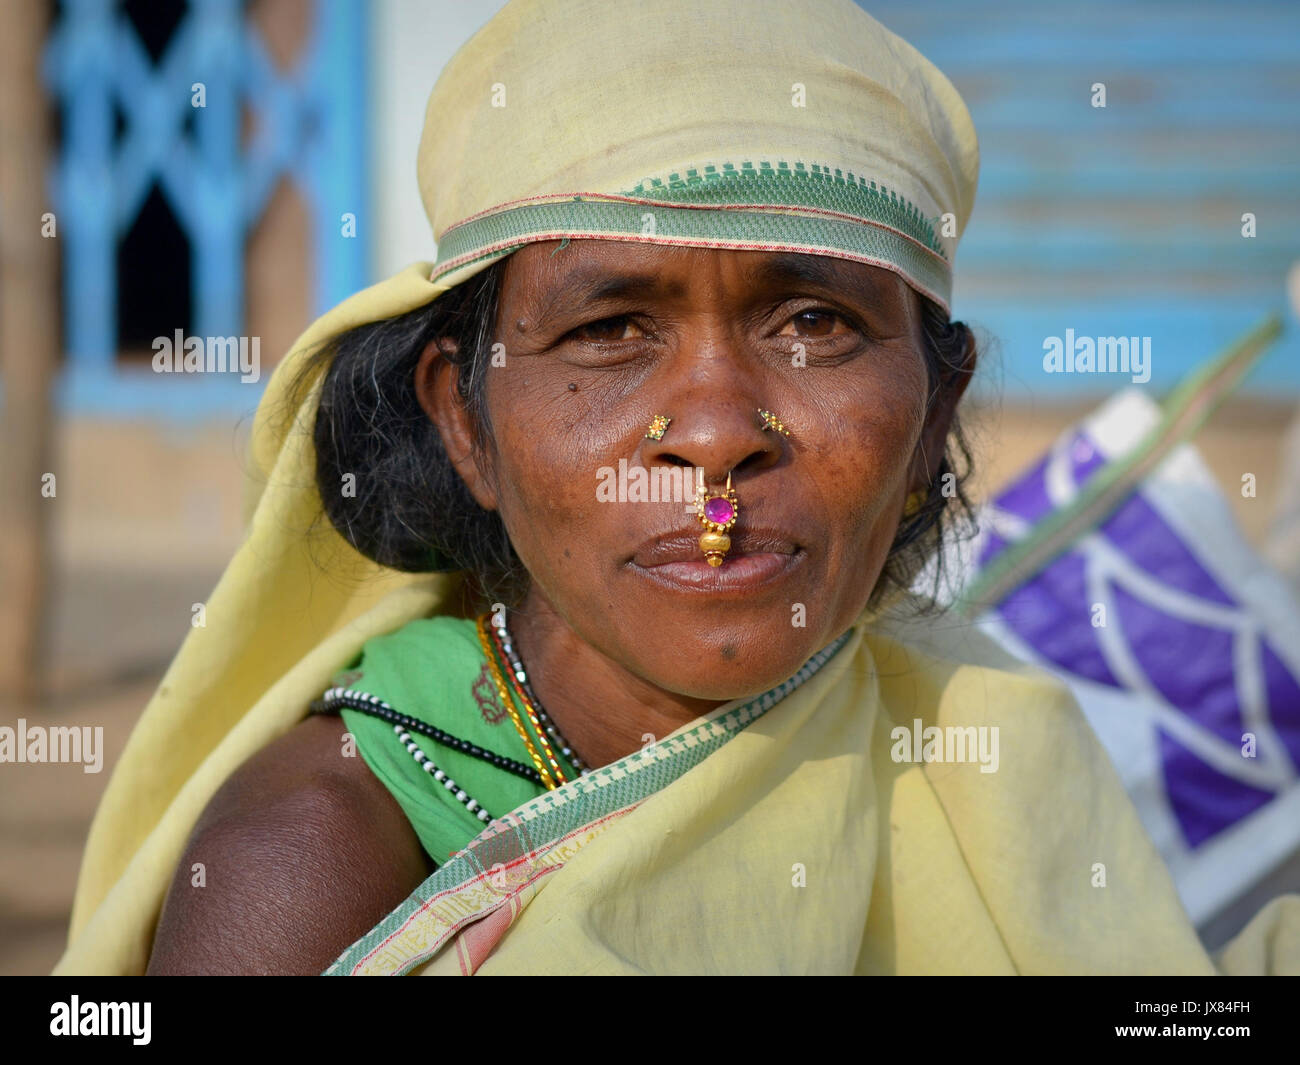 Closeup street portrait (outdoor headshot, full-face view) of a mature Indian Adivasi market woman with two nose Stock Photo